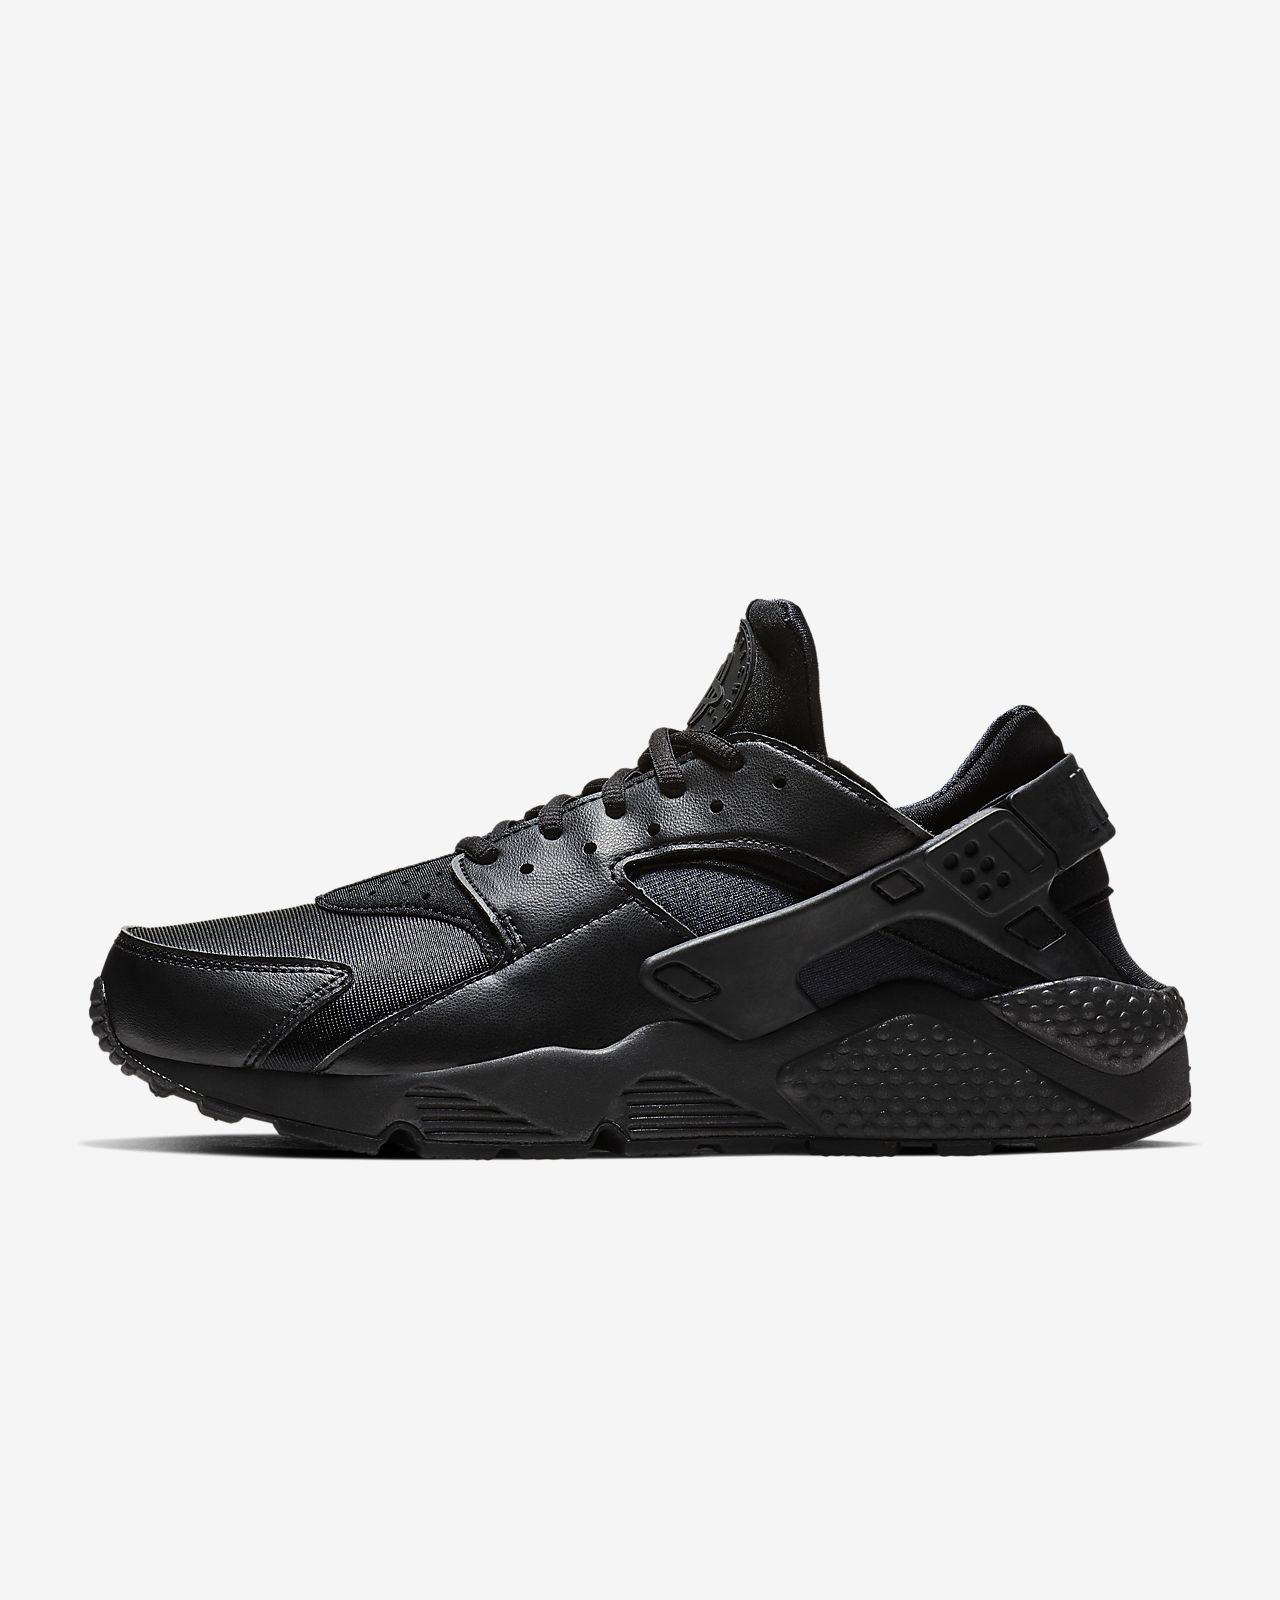 9f07005c360 Nike Air Huarache Women s Shoe. Nike.com